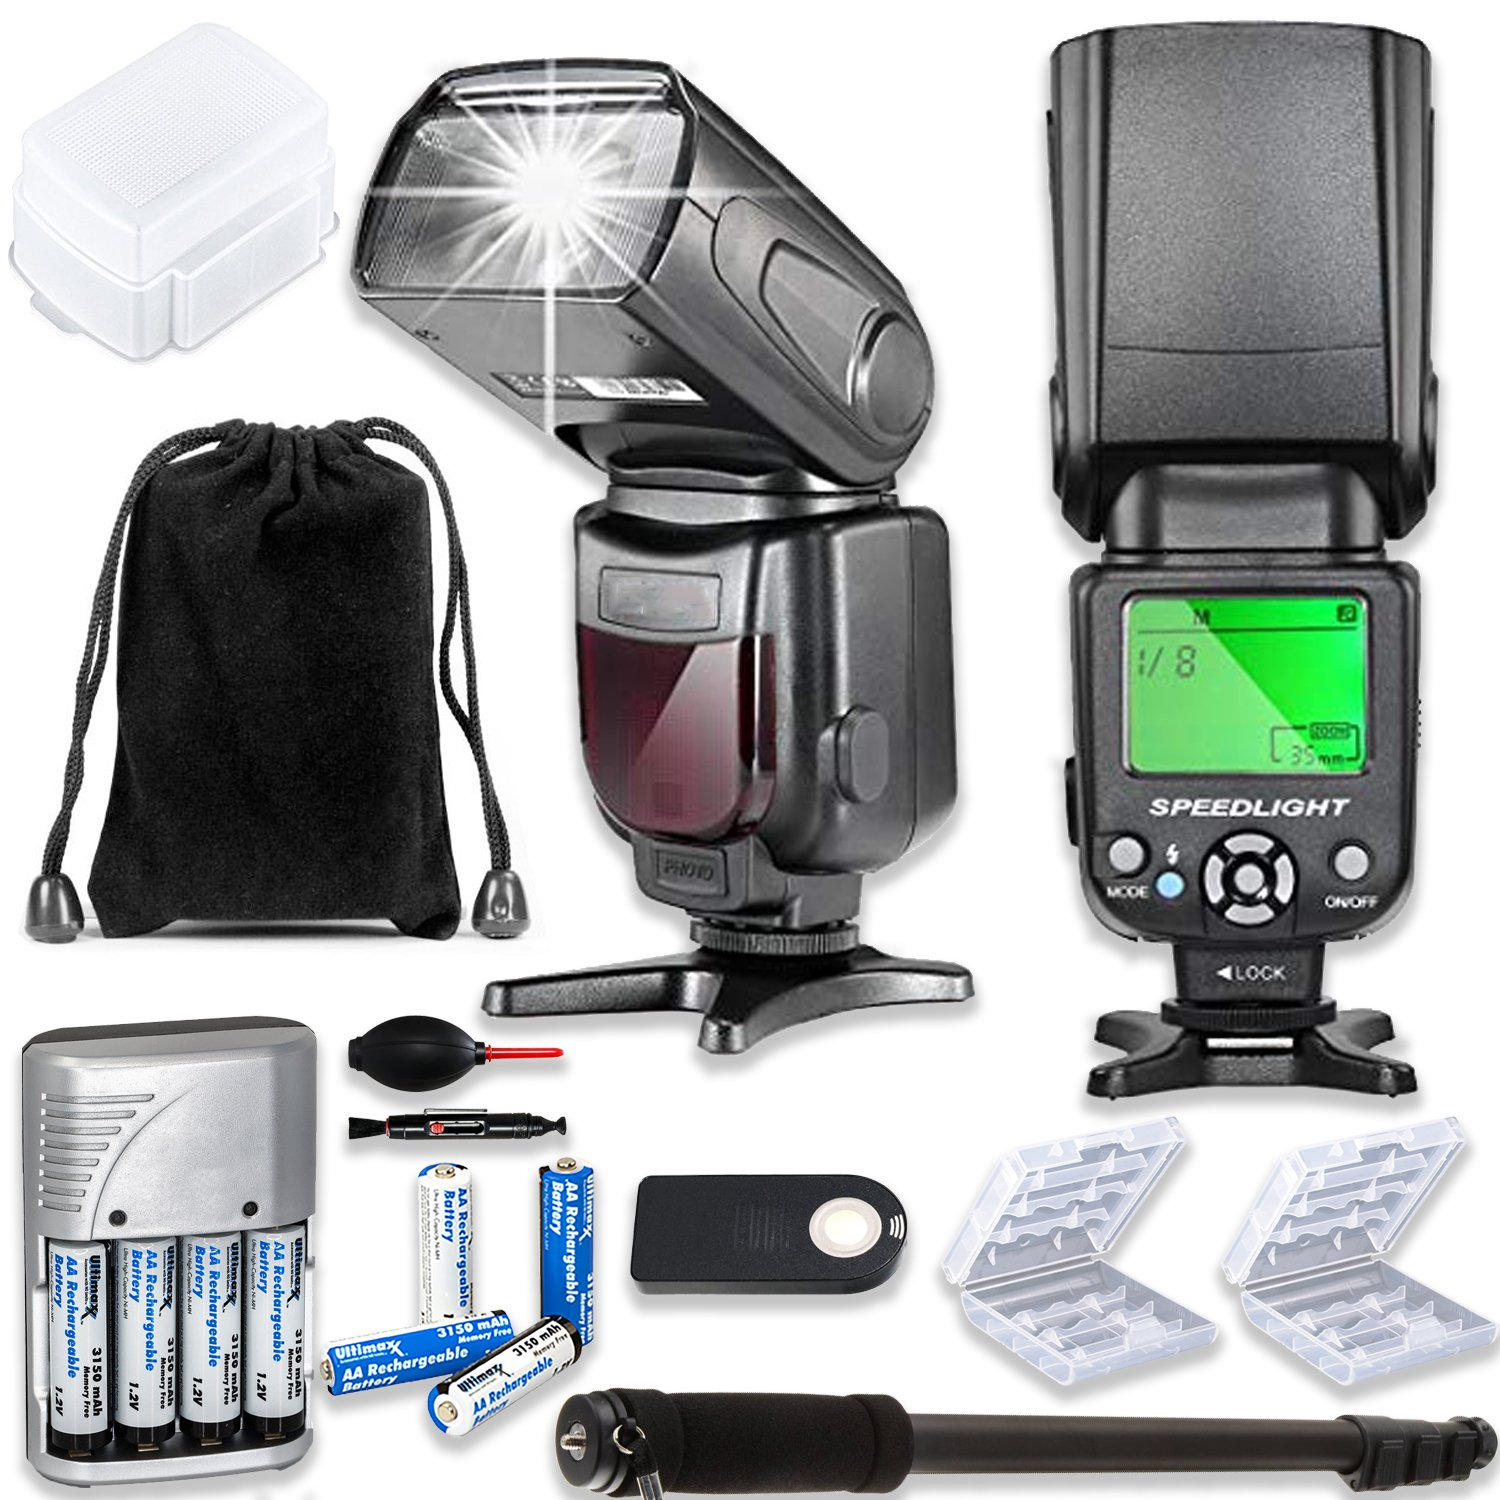 TTL Speed Light Flash for Canon DSLR Cameras EOS Rebel T3, T4, T6, T1i, T2i, T3i, T4i, T5i, T6i, T7i + Monopod + 4 AA Rechargeable Batteries & Charger + 2X Battery Case + Accessory Bundle by Paging Zone